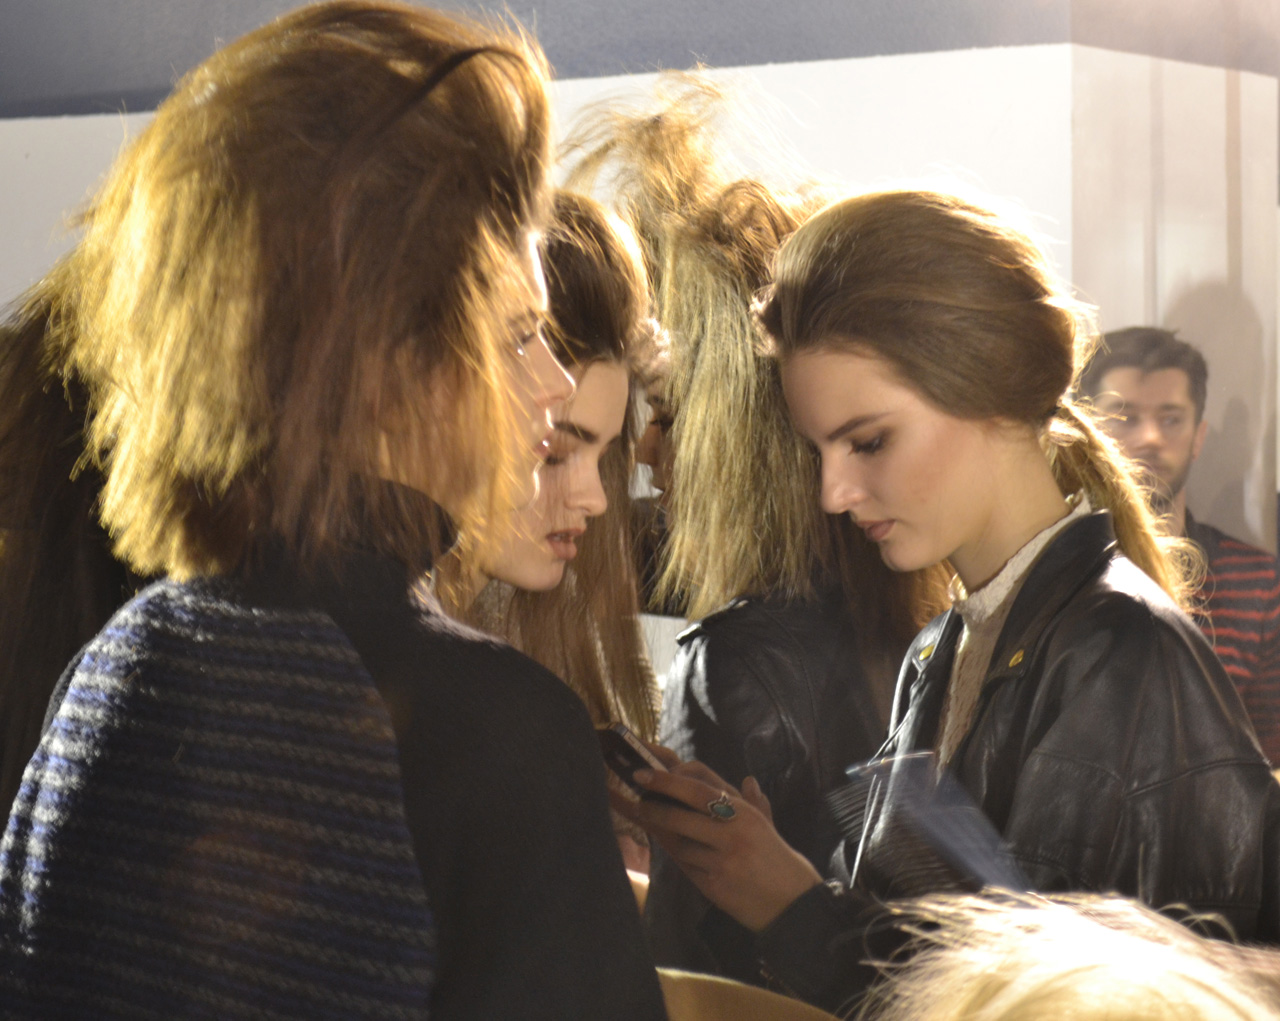 LOEWE-AH-2013-BACKSTAGES-Pierre-Christophe-Gam-ChicandGeek-0150